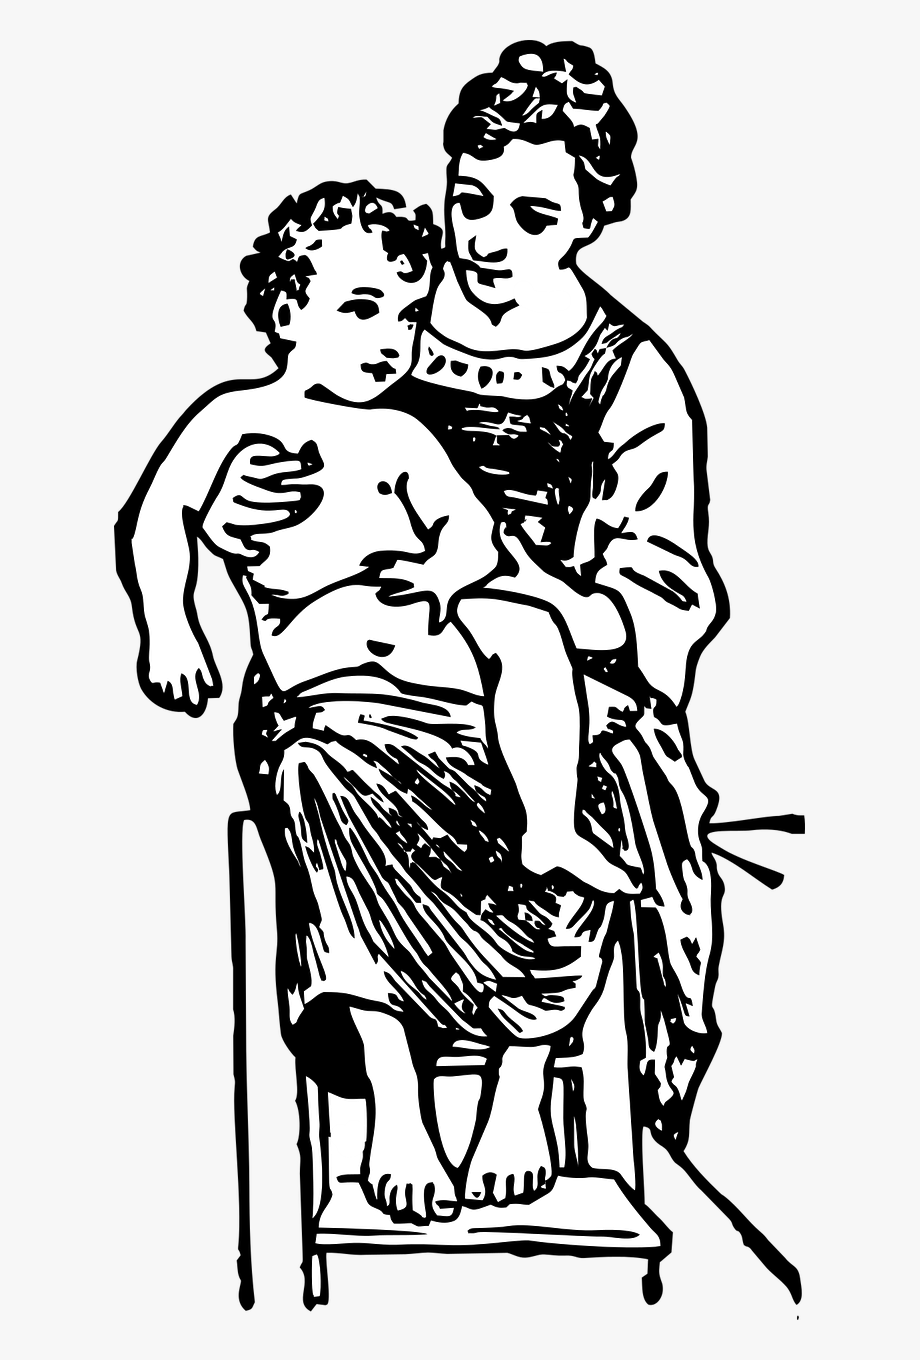 Child share with parent clipart black and white clip art black and white download Mother,mother And Child,child,child Care,family,love,woman - Ibu Dan ... clip art black and white download